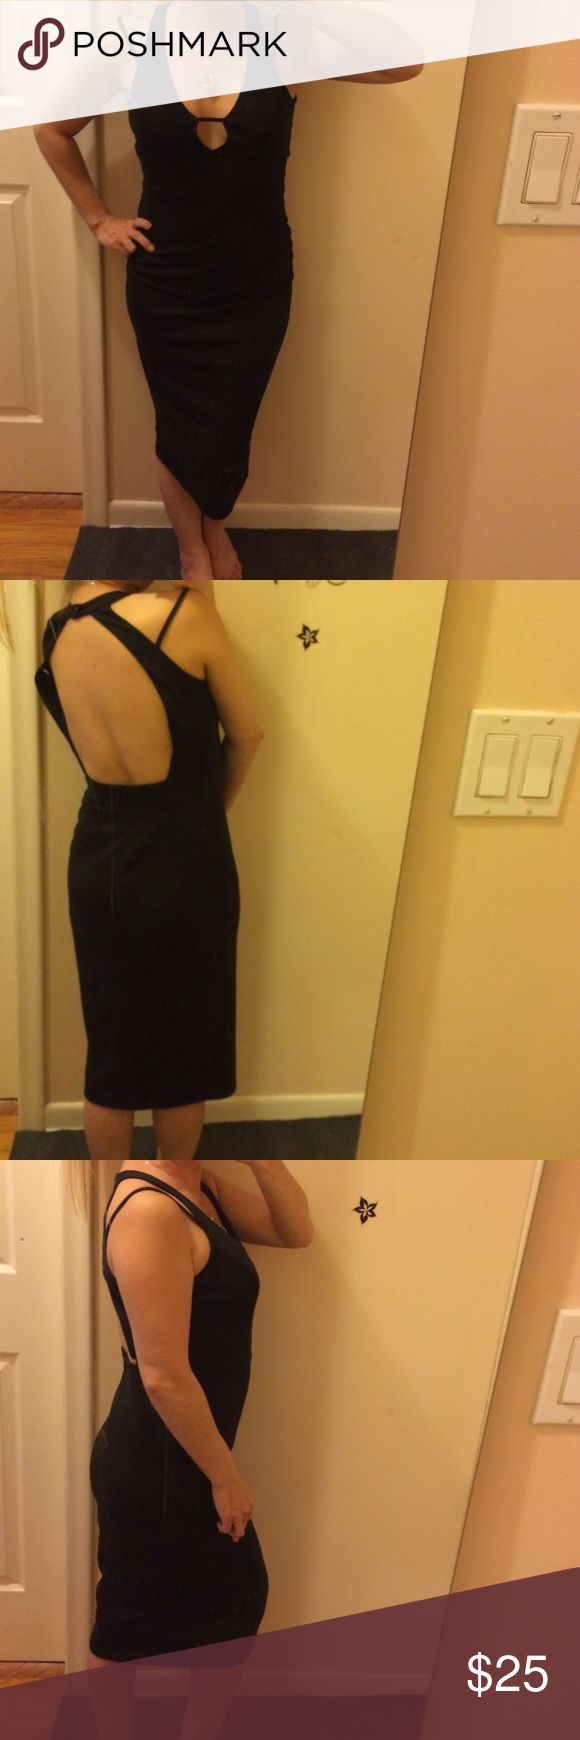 """Socialite black midi dress strappy, like new. Wore for running a couple errands only. Super cute and elegant with a modern twist. Buttons in the back of neck. Backless and zips in back. Super stretchy to accommodate many different body shapes and accentuates all the right places. Bust: 15"""" waist: 14"""" hips: 16"""". Waist down: 27"""". Spaghetti straps that fall down to the side. Bottom width: 15"""". Made of polyester and spandex. Back button to bottom in back: 15"""". Definitely a classic look that can…"""